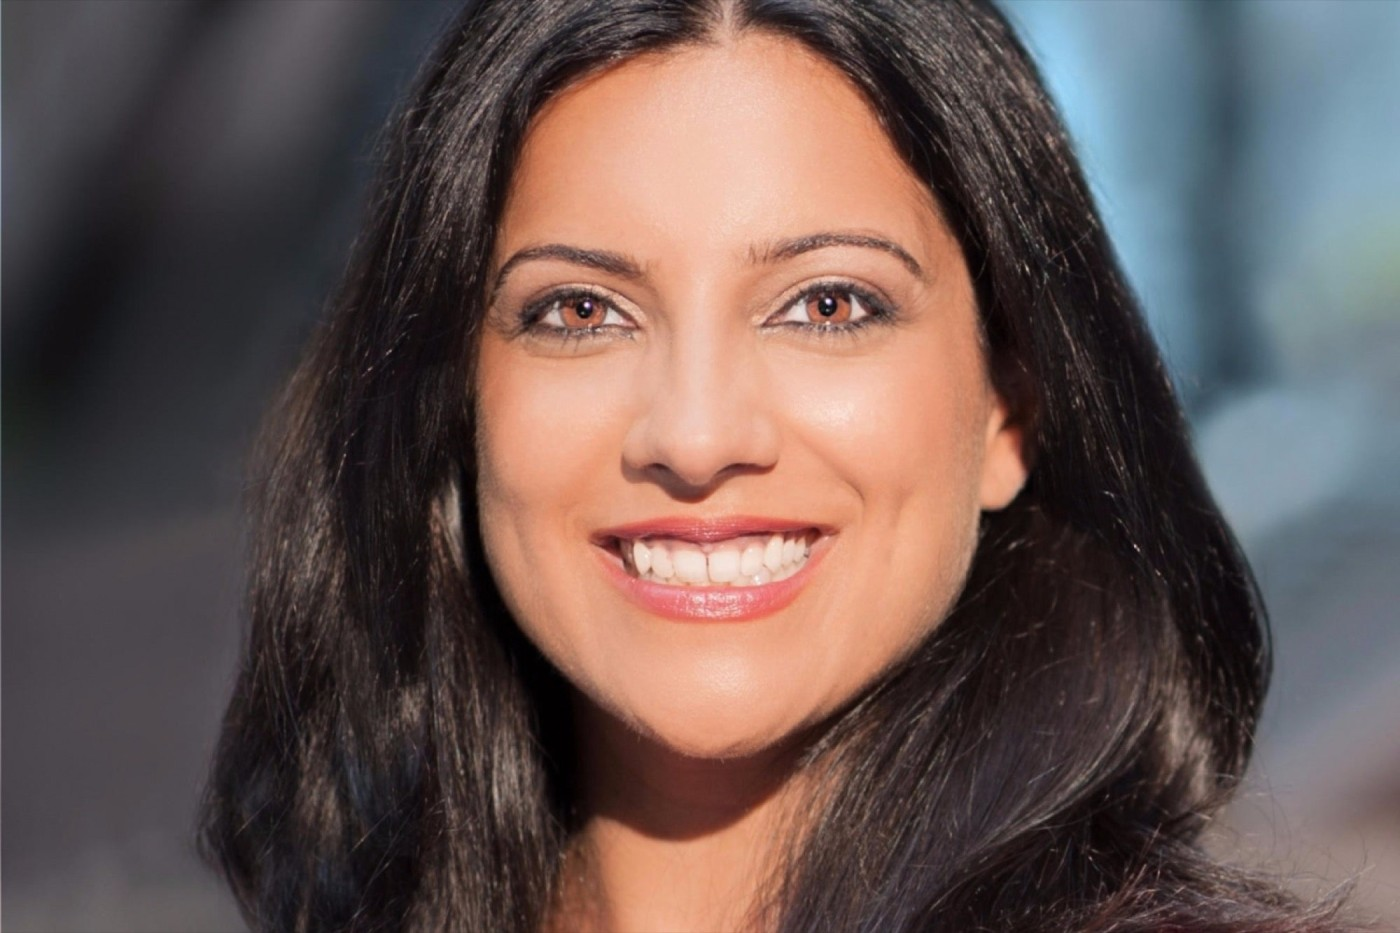 Reshma Saujani | Top 10 Most inspiring business leaders in World 2021